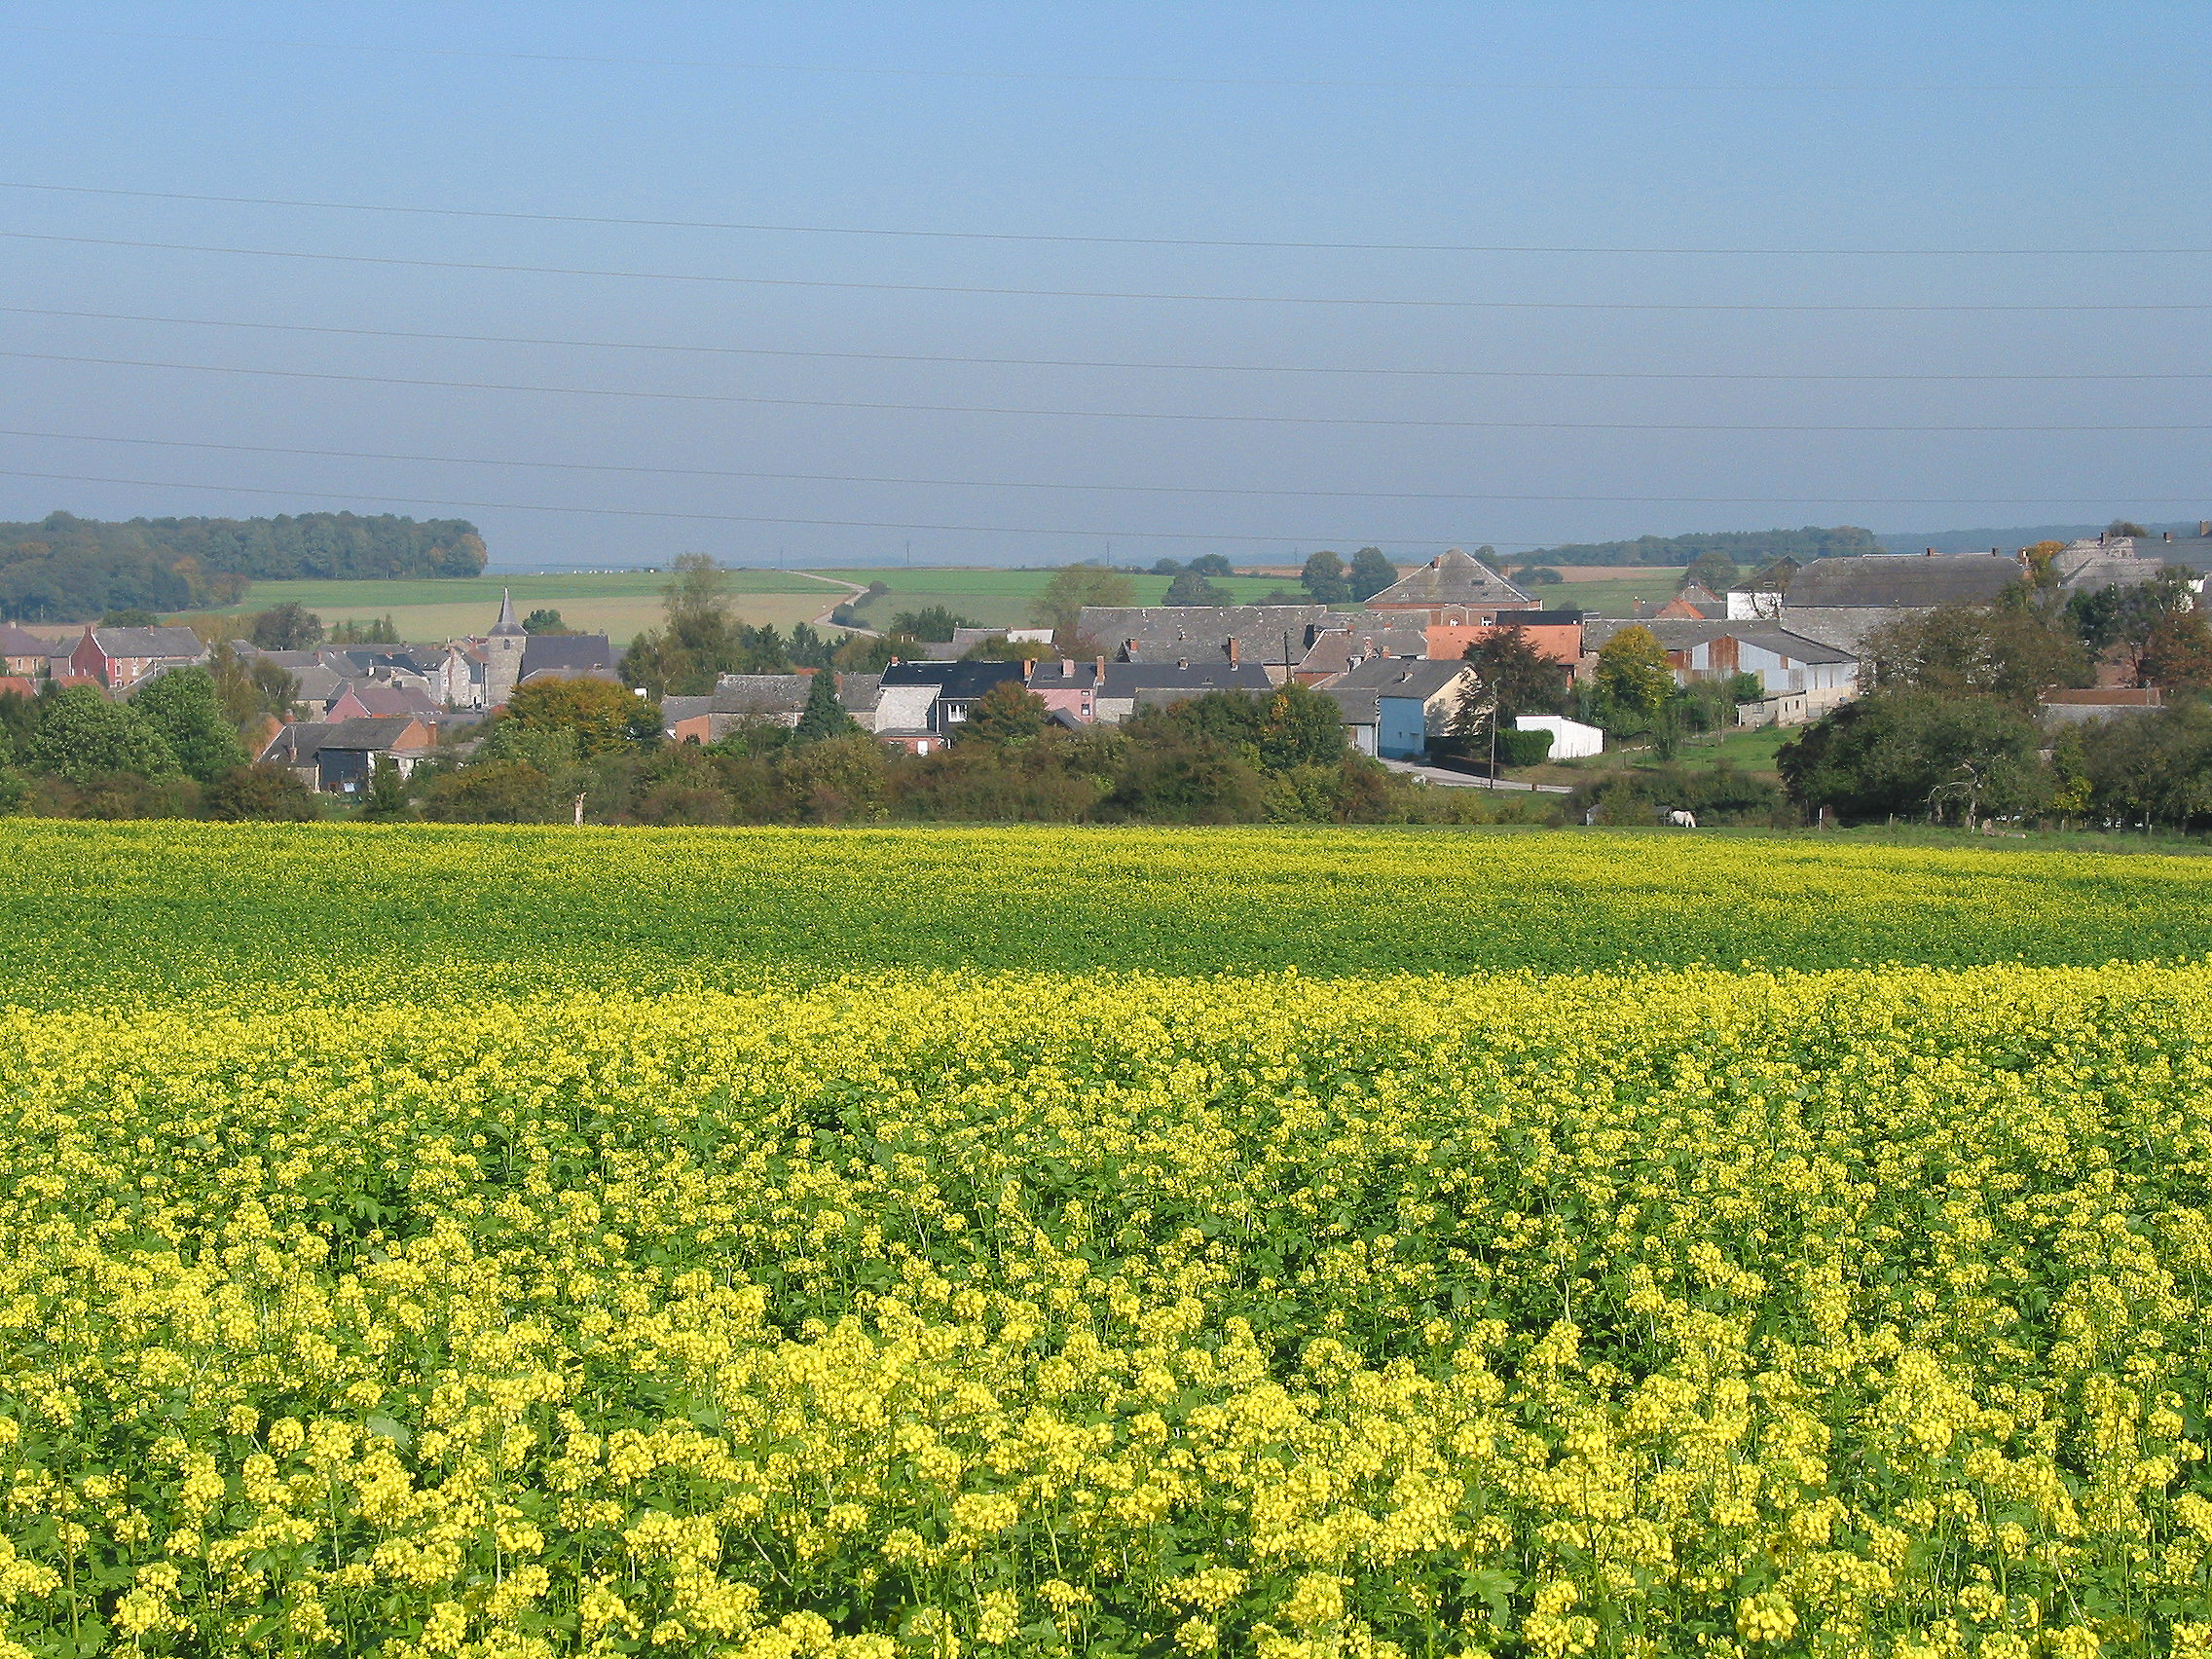 Scenery & Spring Pictures: Photos De Paysages Cycle 3